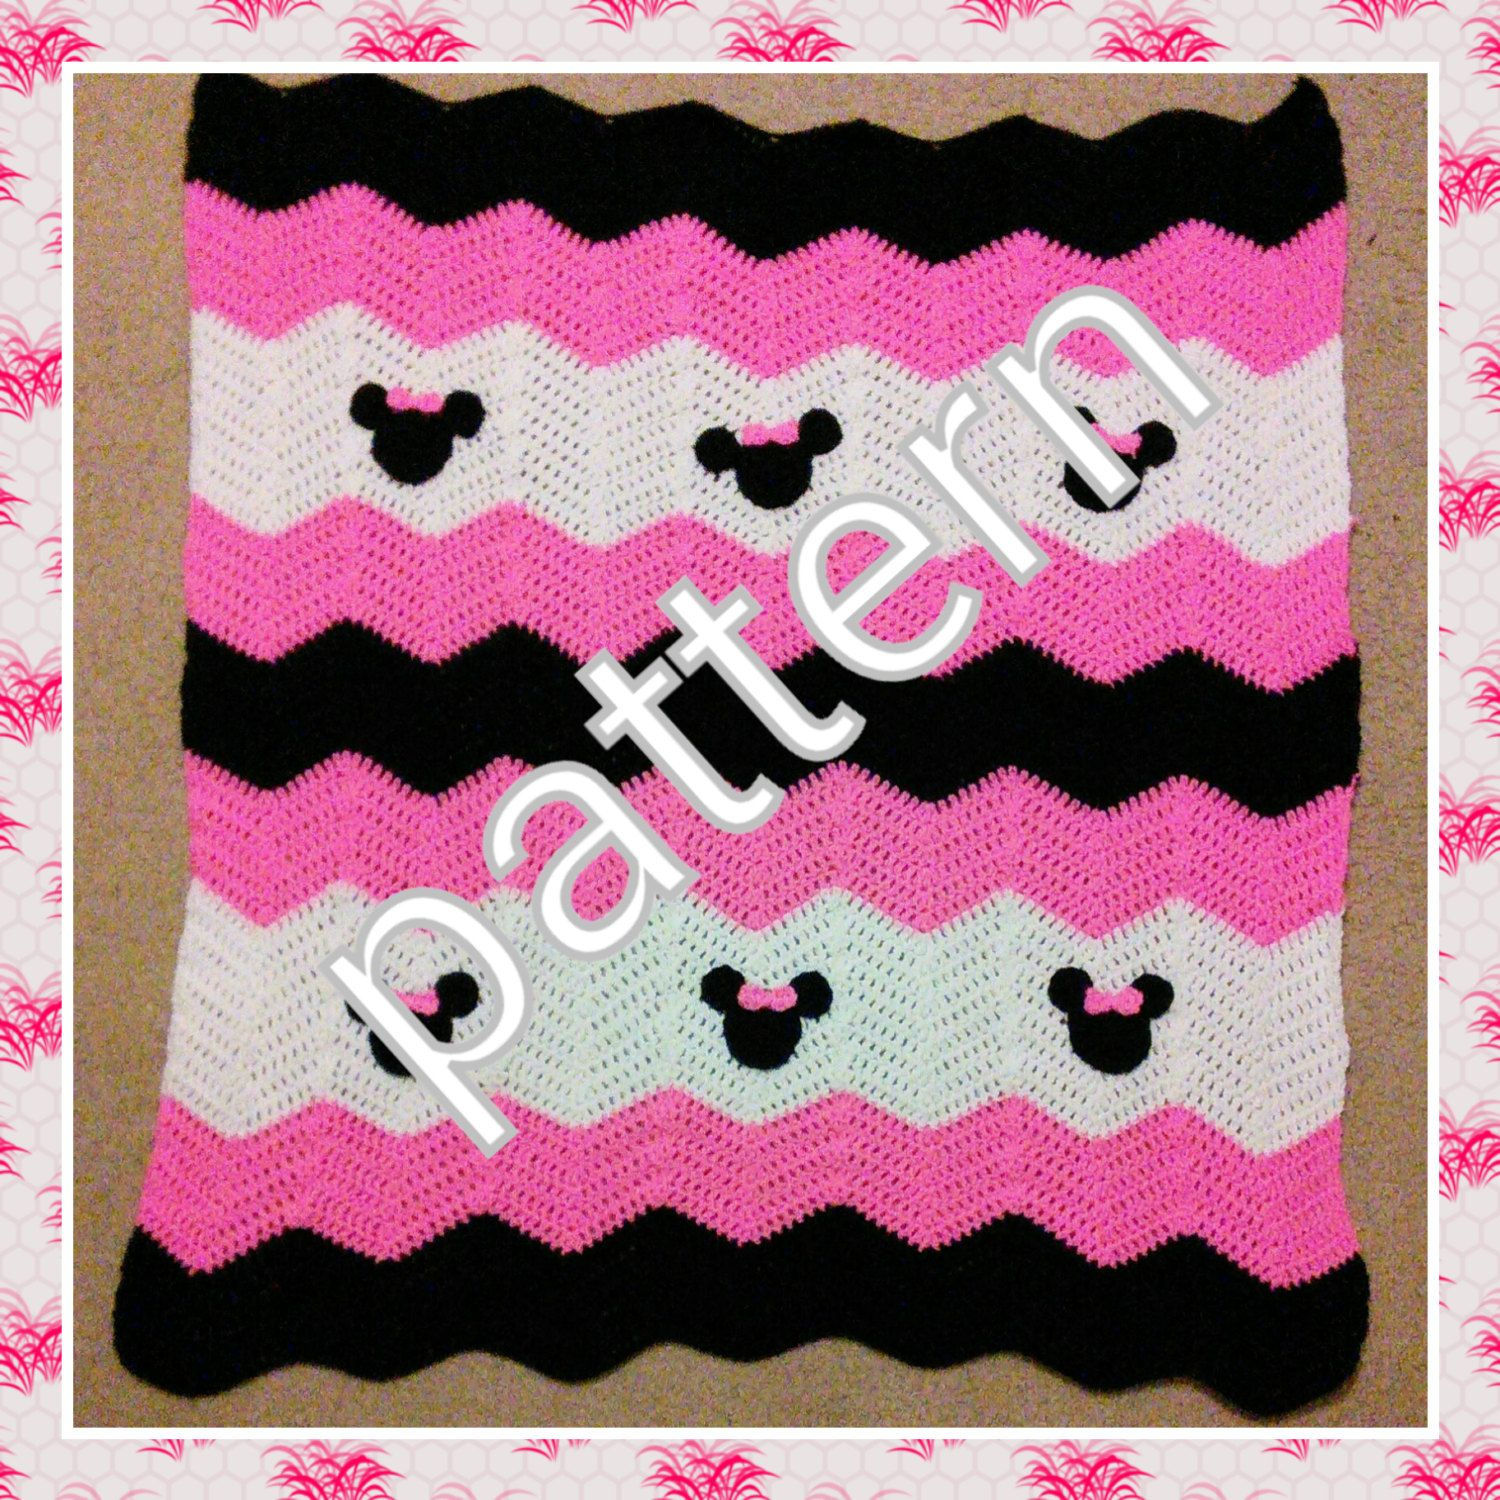 Minnie Mickey Mouse Crochet Pattern. Minnie Mouse baby blanket pattern